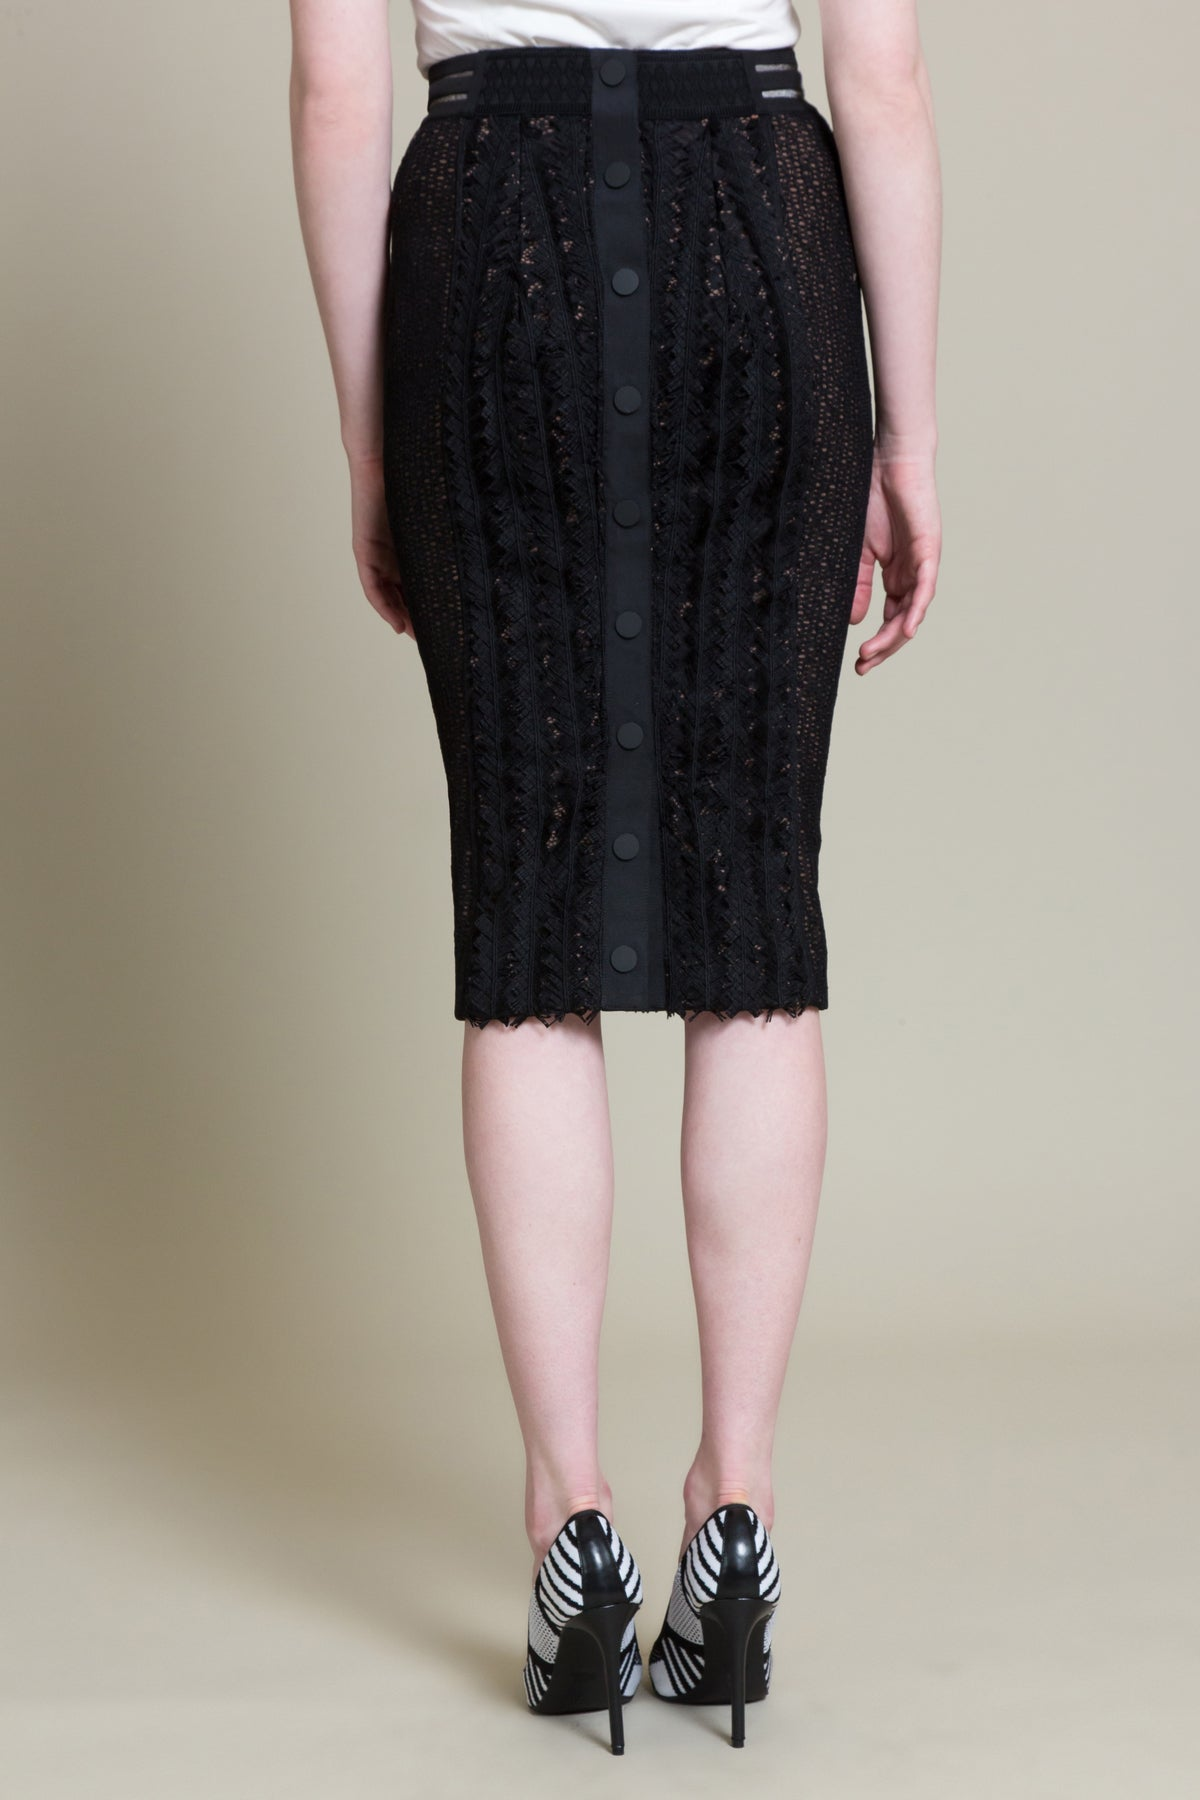 Herringbone Lace Pencil Skirt (3519303516235)